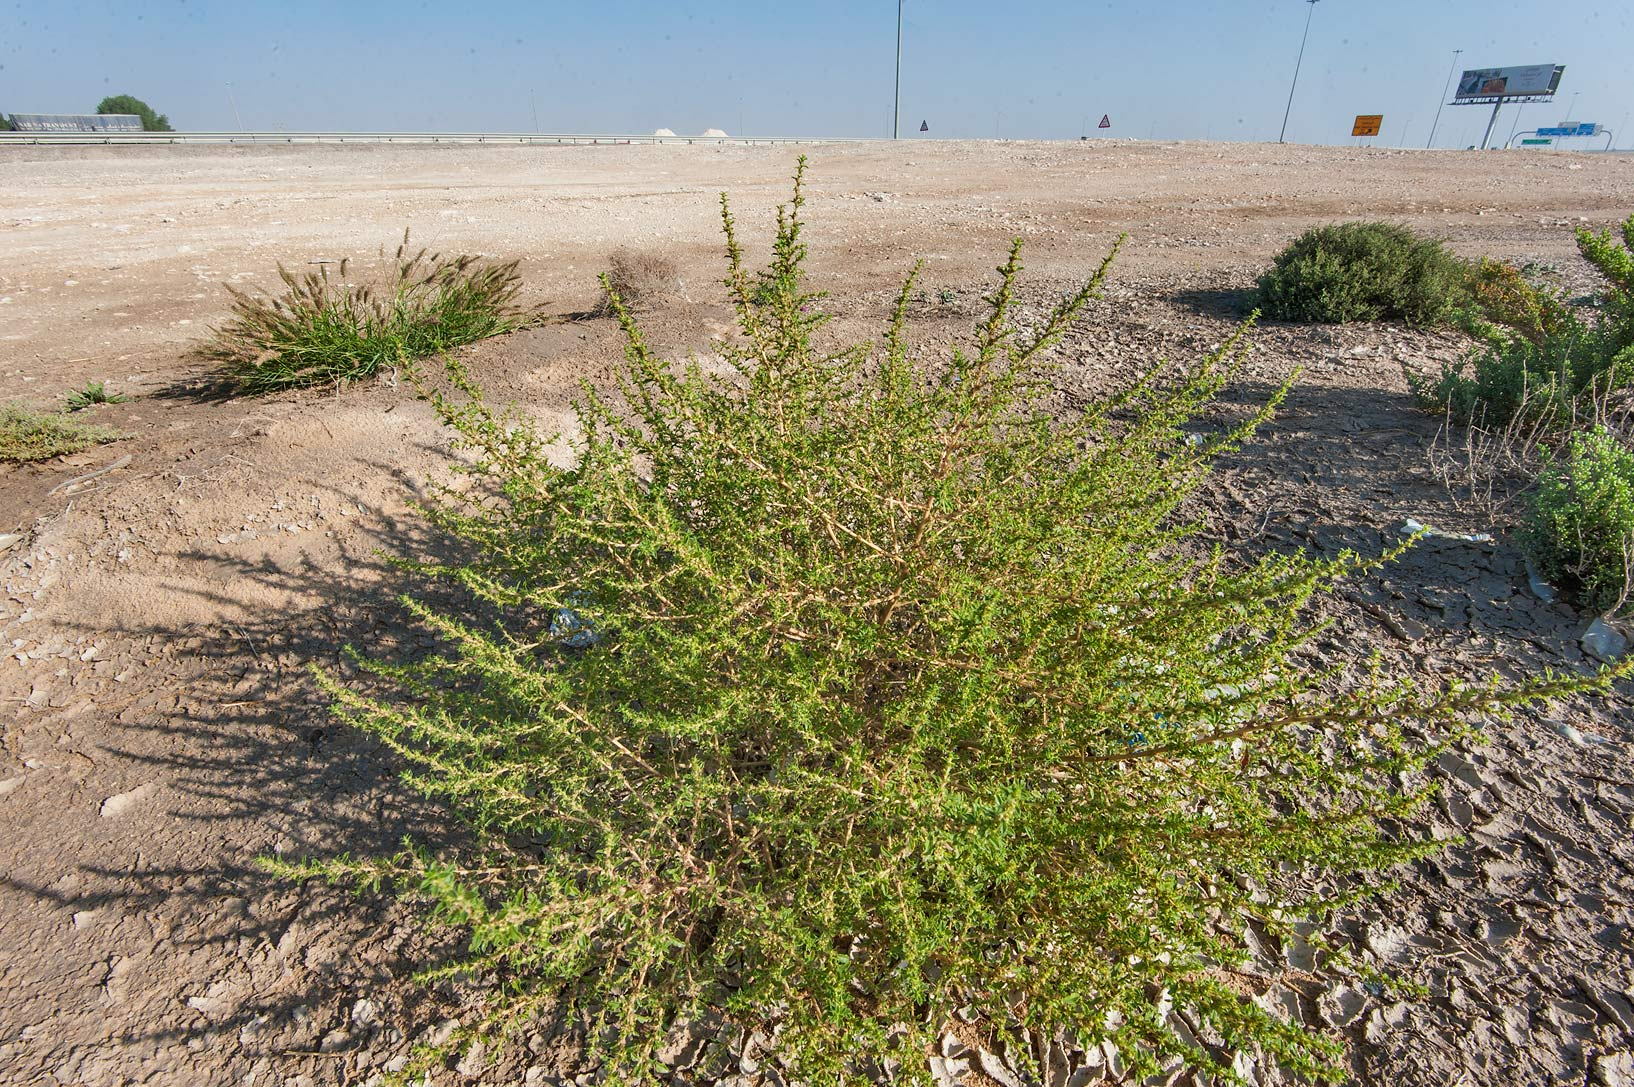 Common tumbleweed (Amaranthus albus) in a...of Salwa Rd. near Mukaynis. Qatar